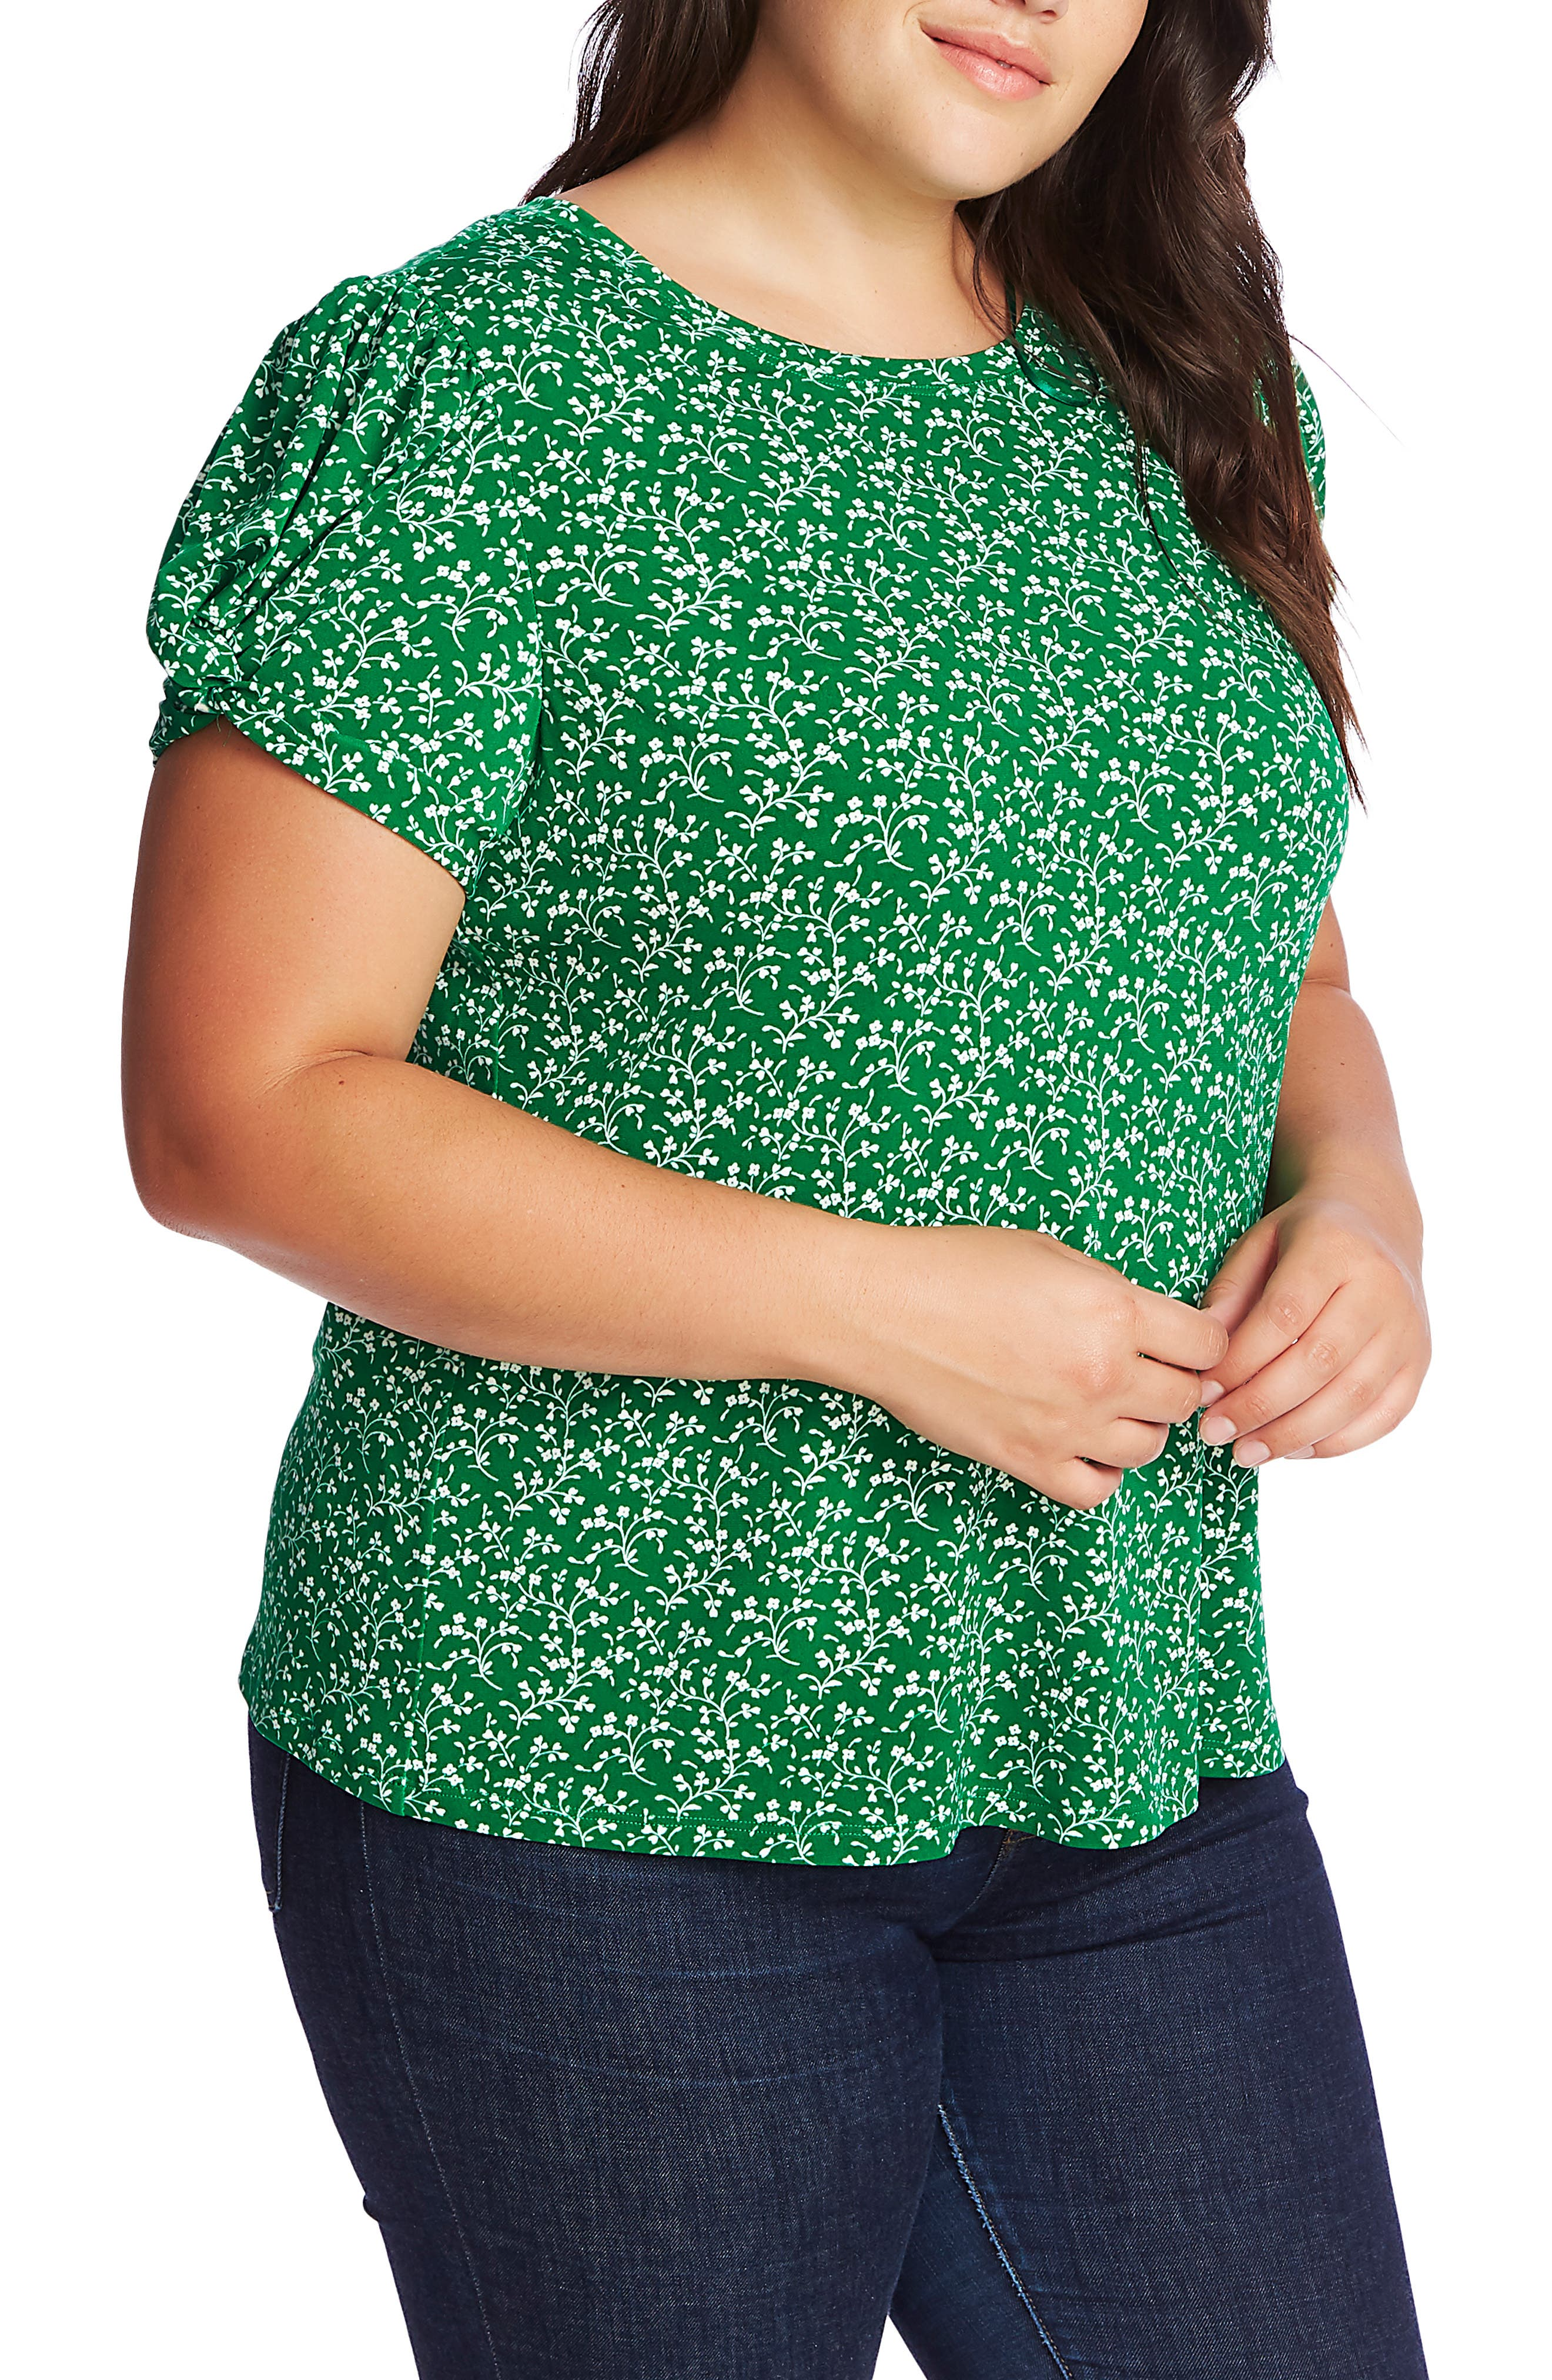 1930s Clothing Plus Size Womens Cece Floral Print Twist Sleeve Top Size 3X - Green $69.00 AT vintagedancer.com